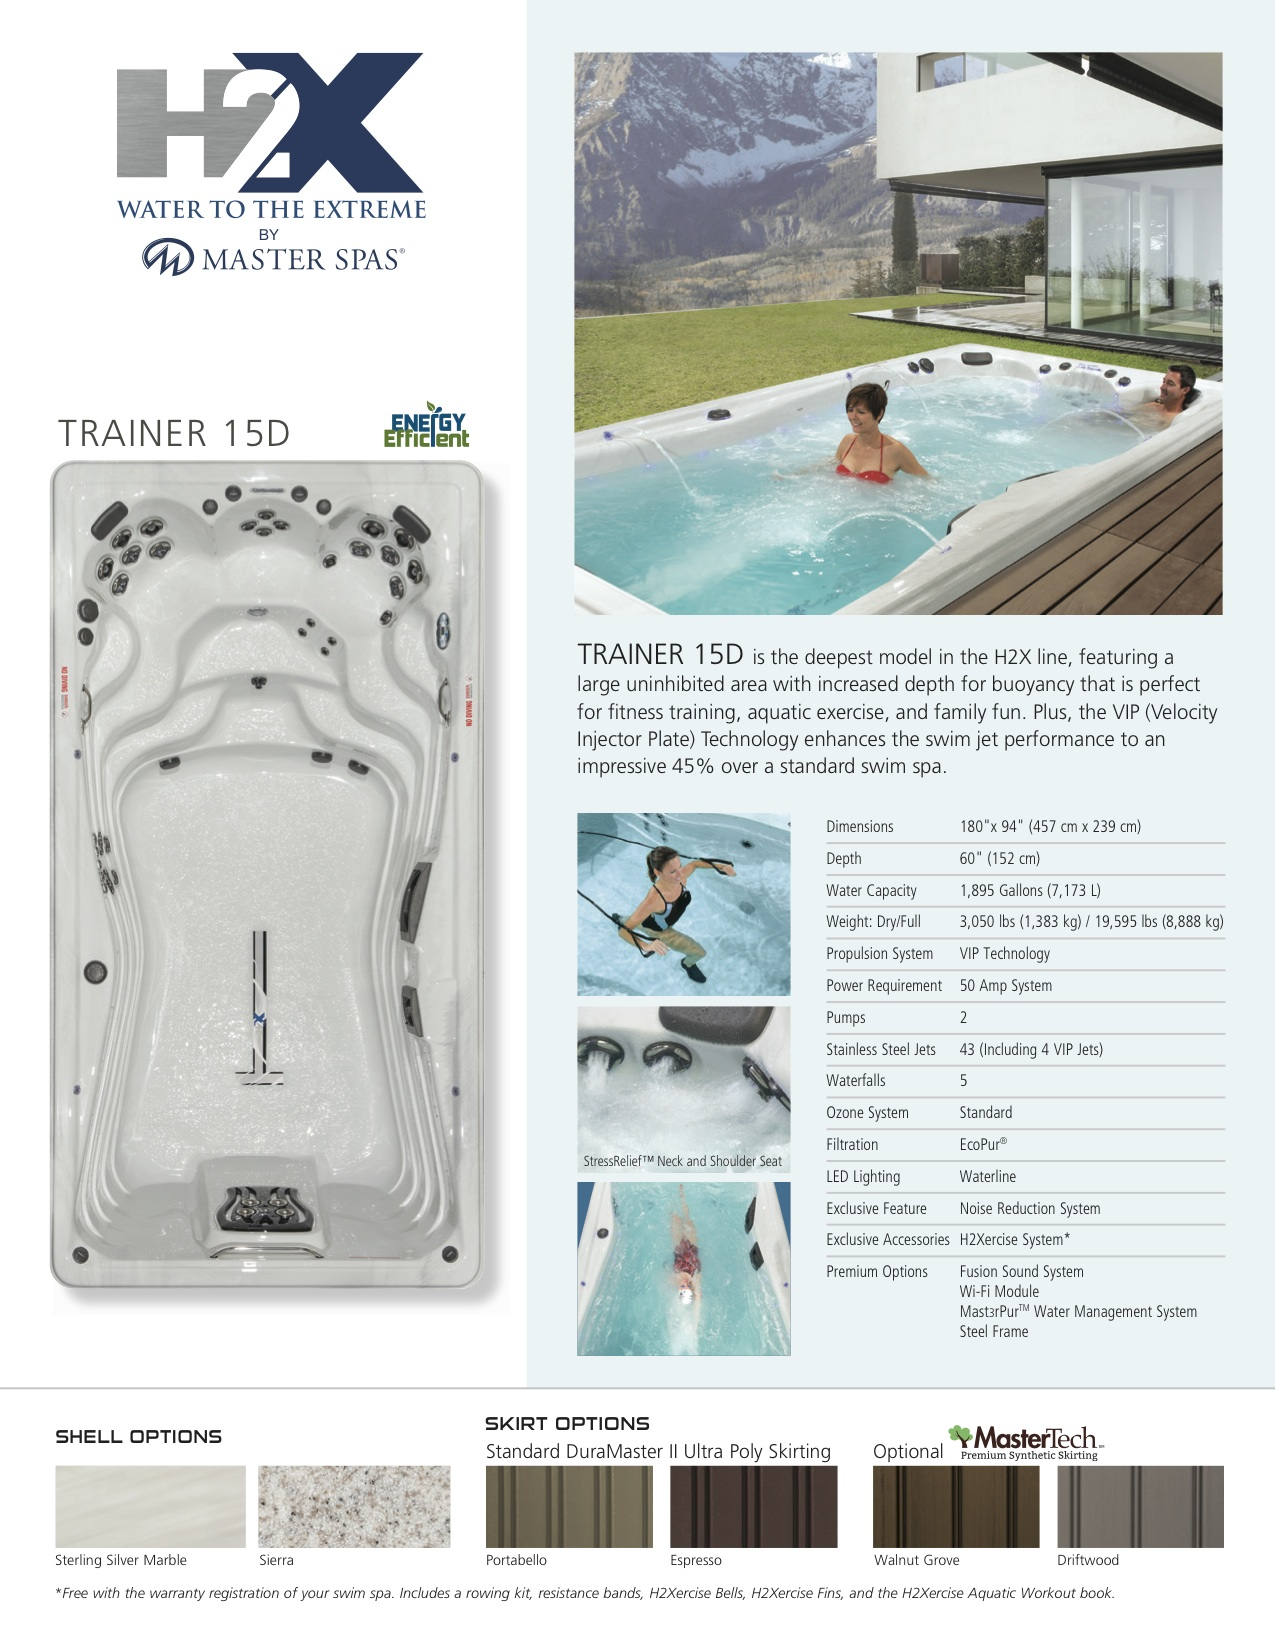 H2X Trainer 15 D Swim Spa